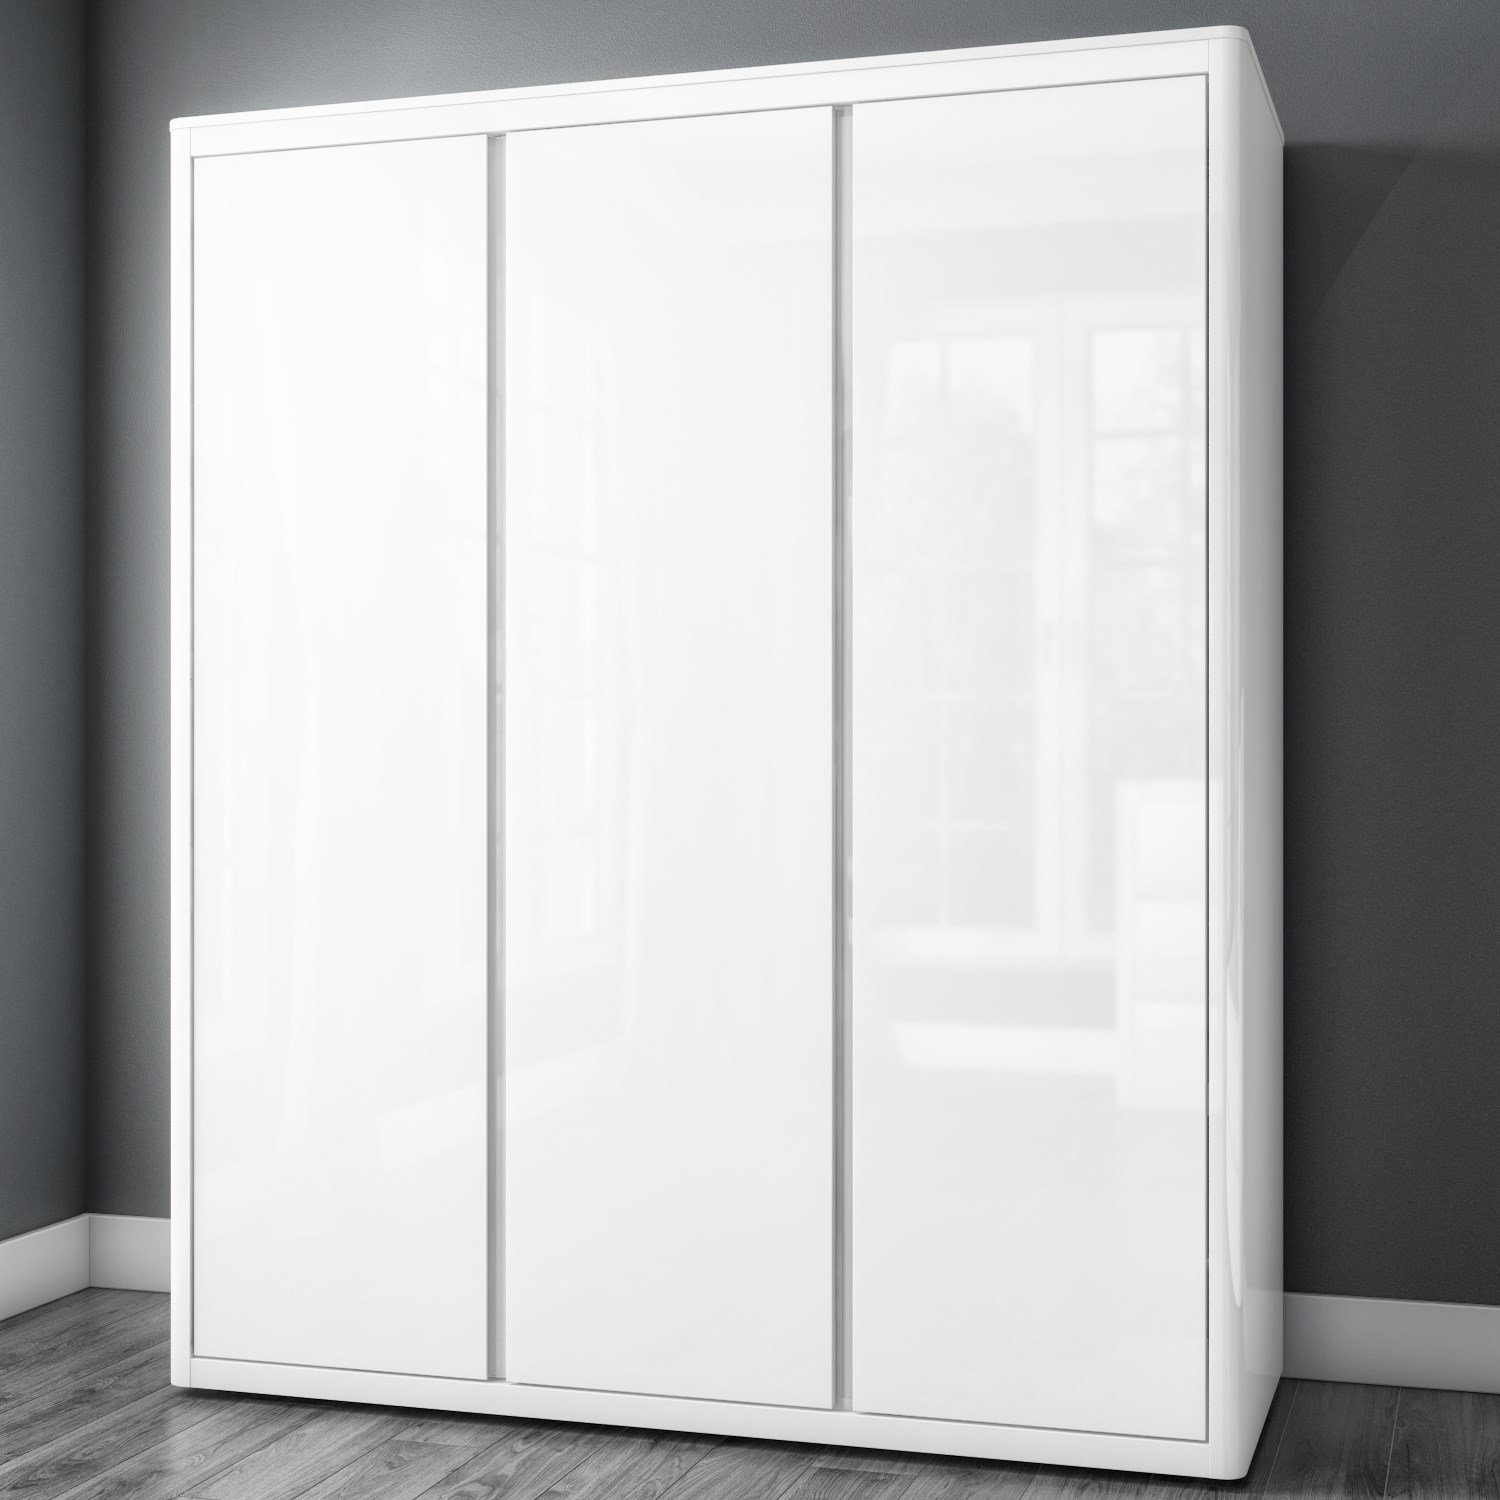 Types of wardrobes: buy wardrobes with no doors